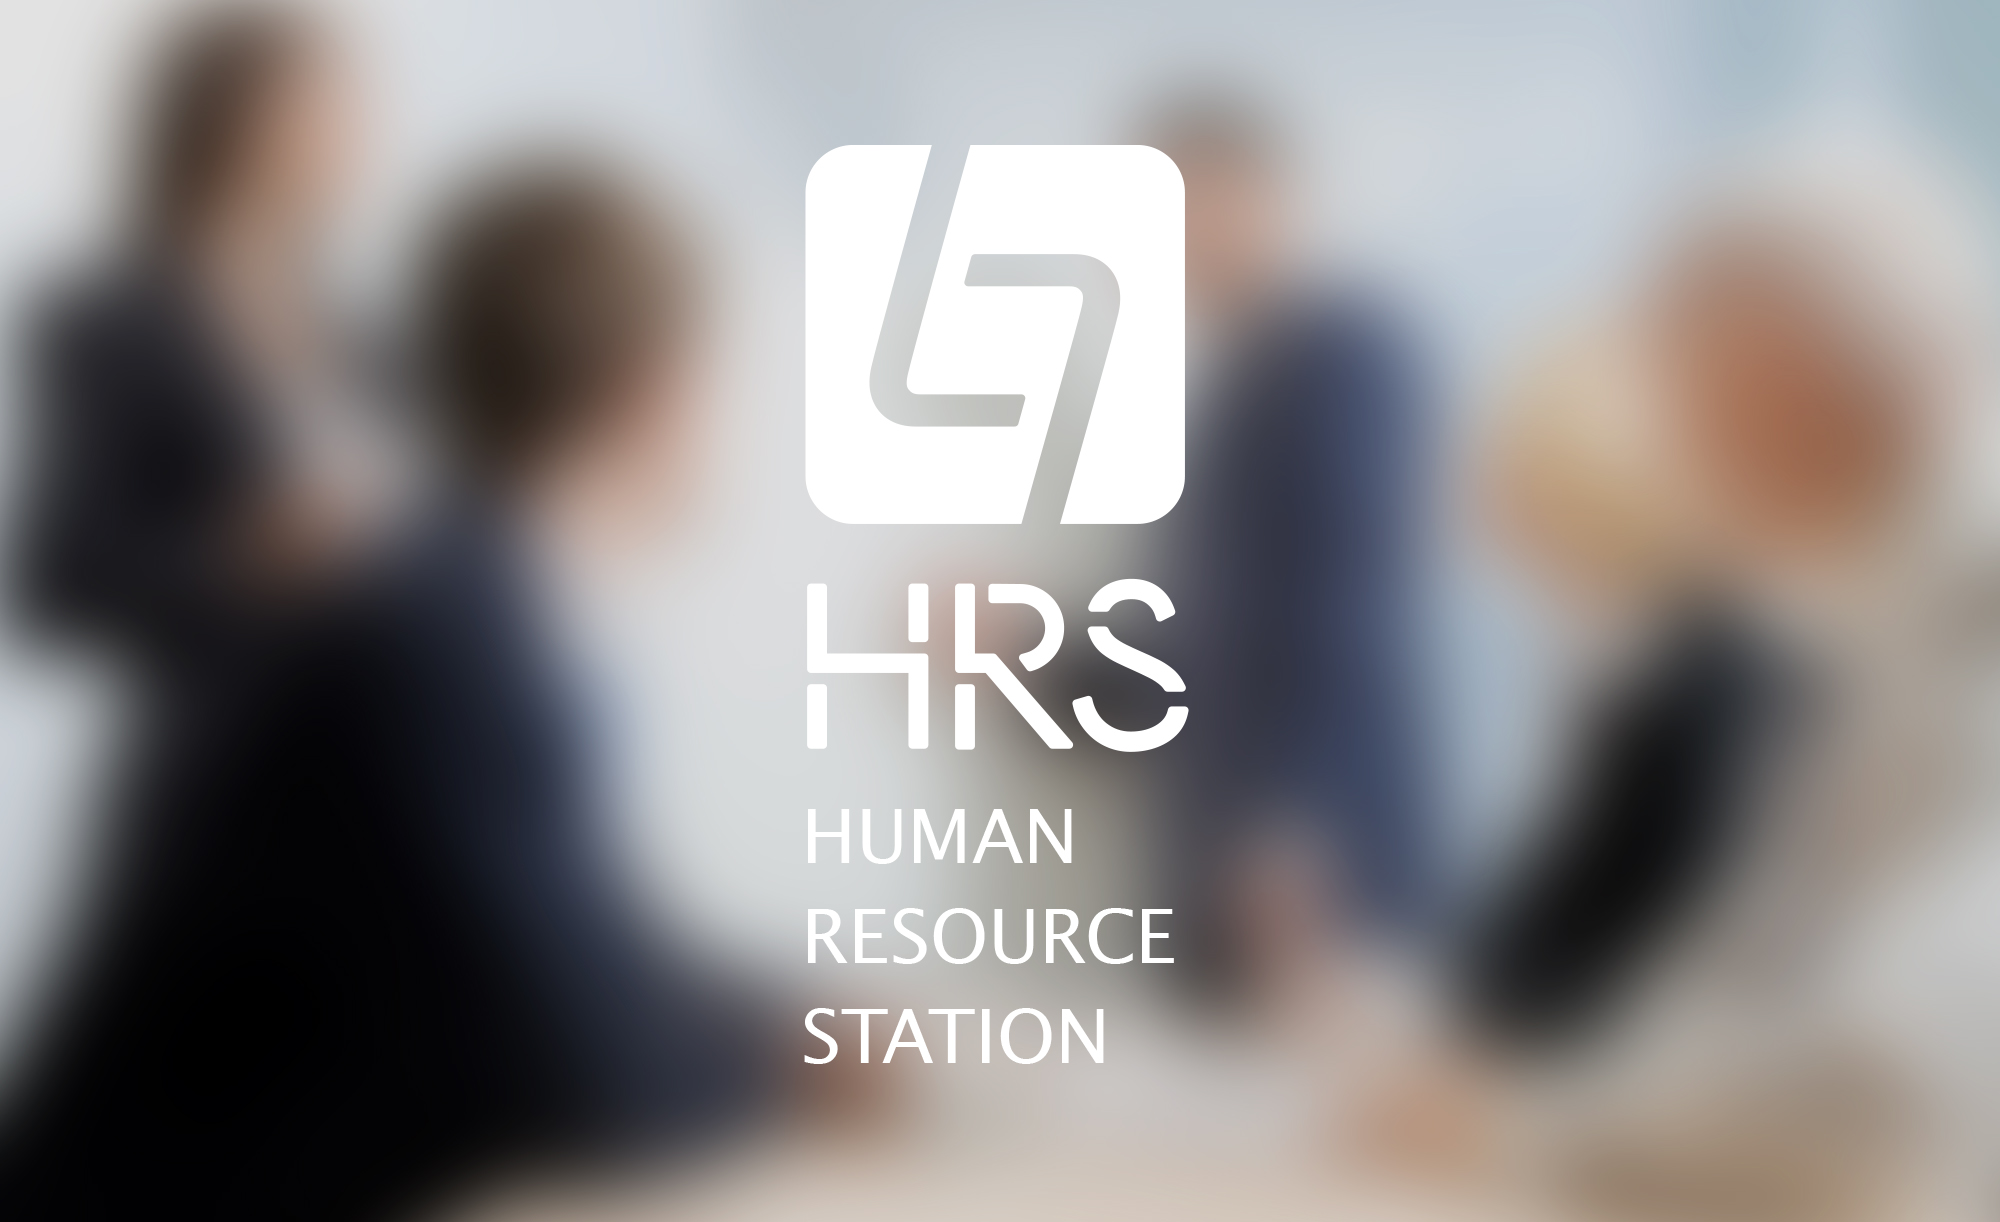 HRS LOGO DESIGN&VI regulations